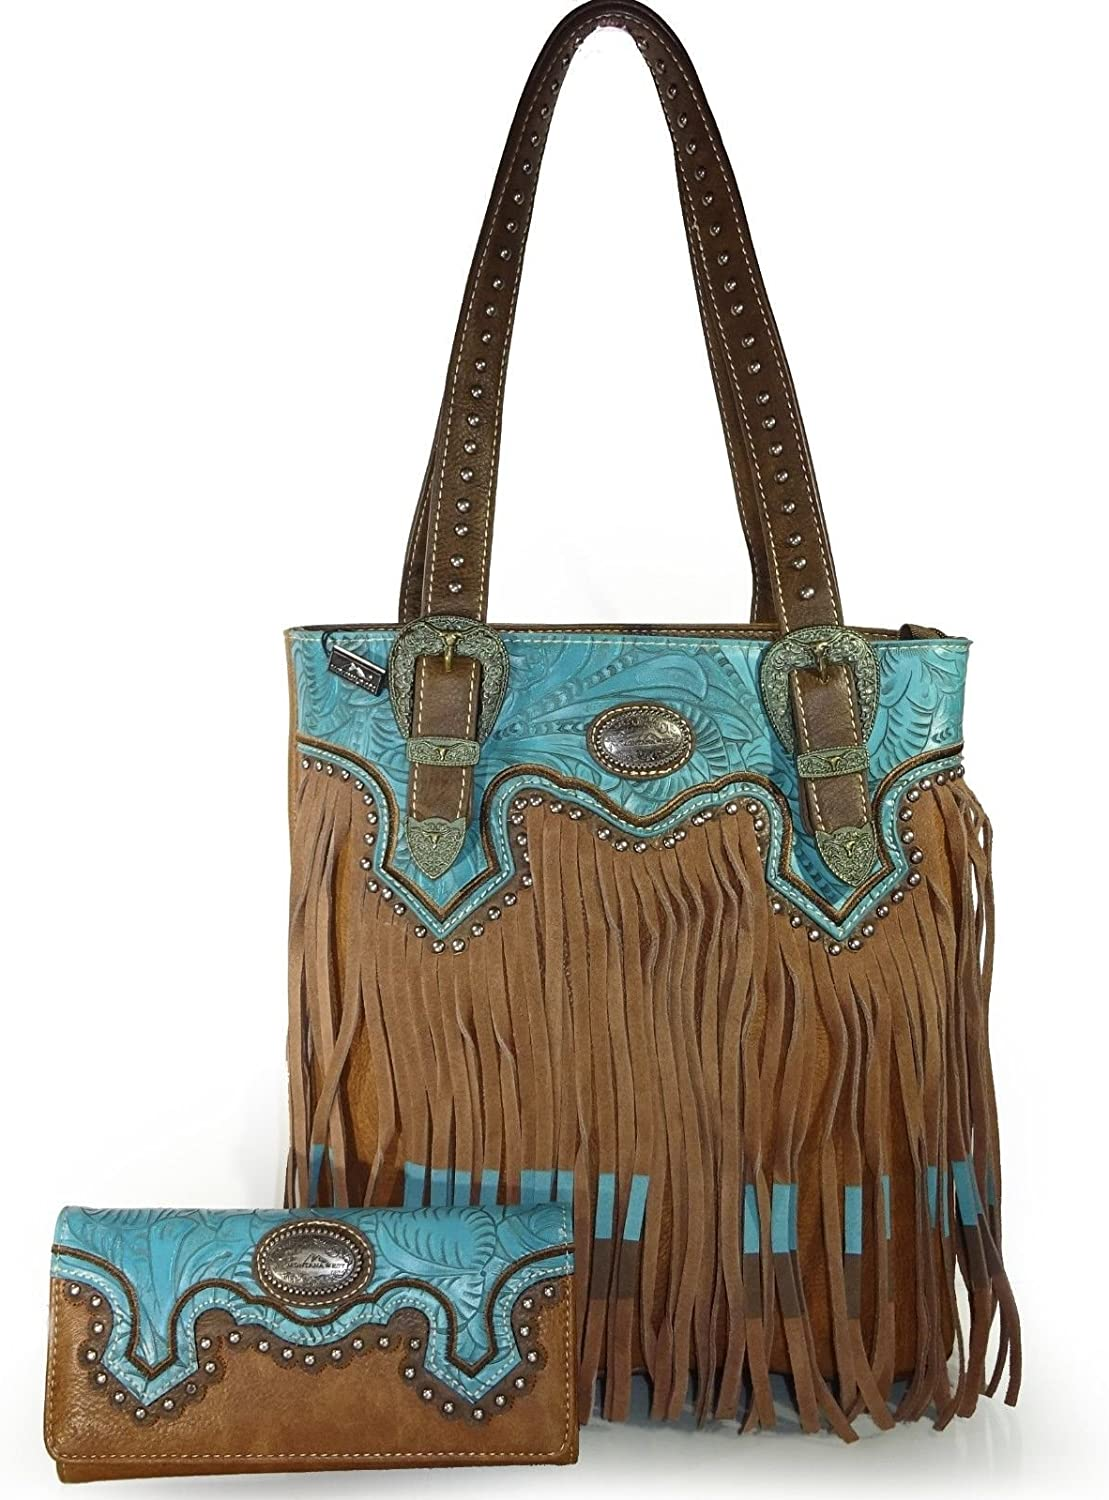 Montana West Concealed Gun Carry Floral Embossed Fringed Tote + Wallet Brn TQ